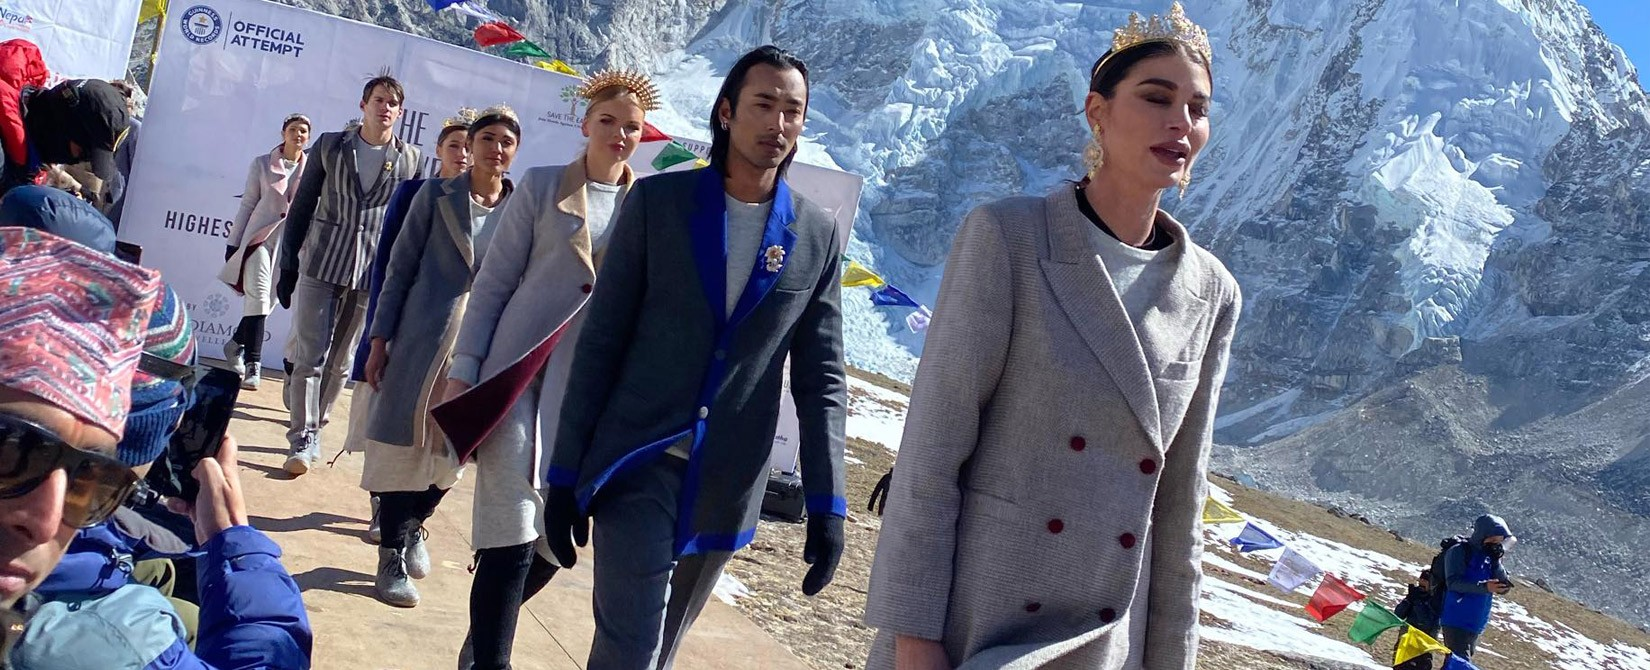 Mount Everest Fashion Runway 2020